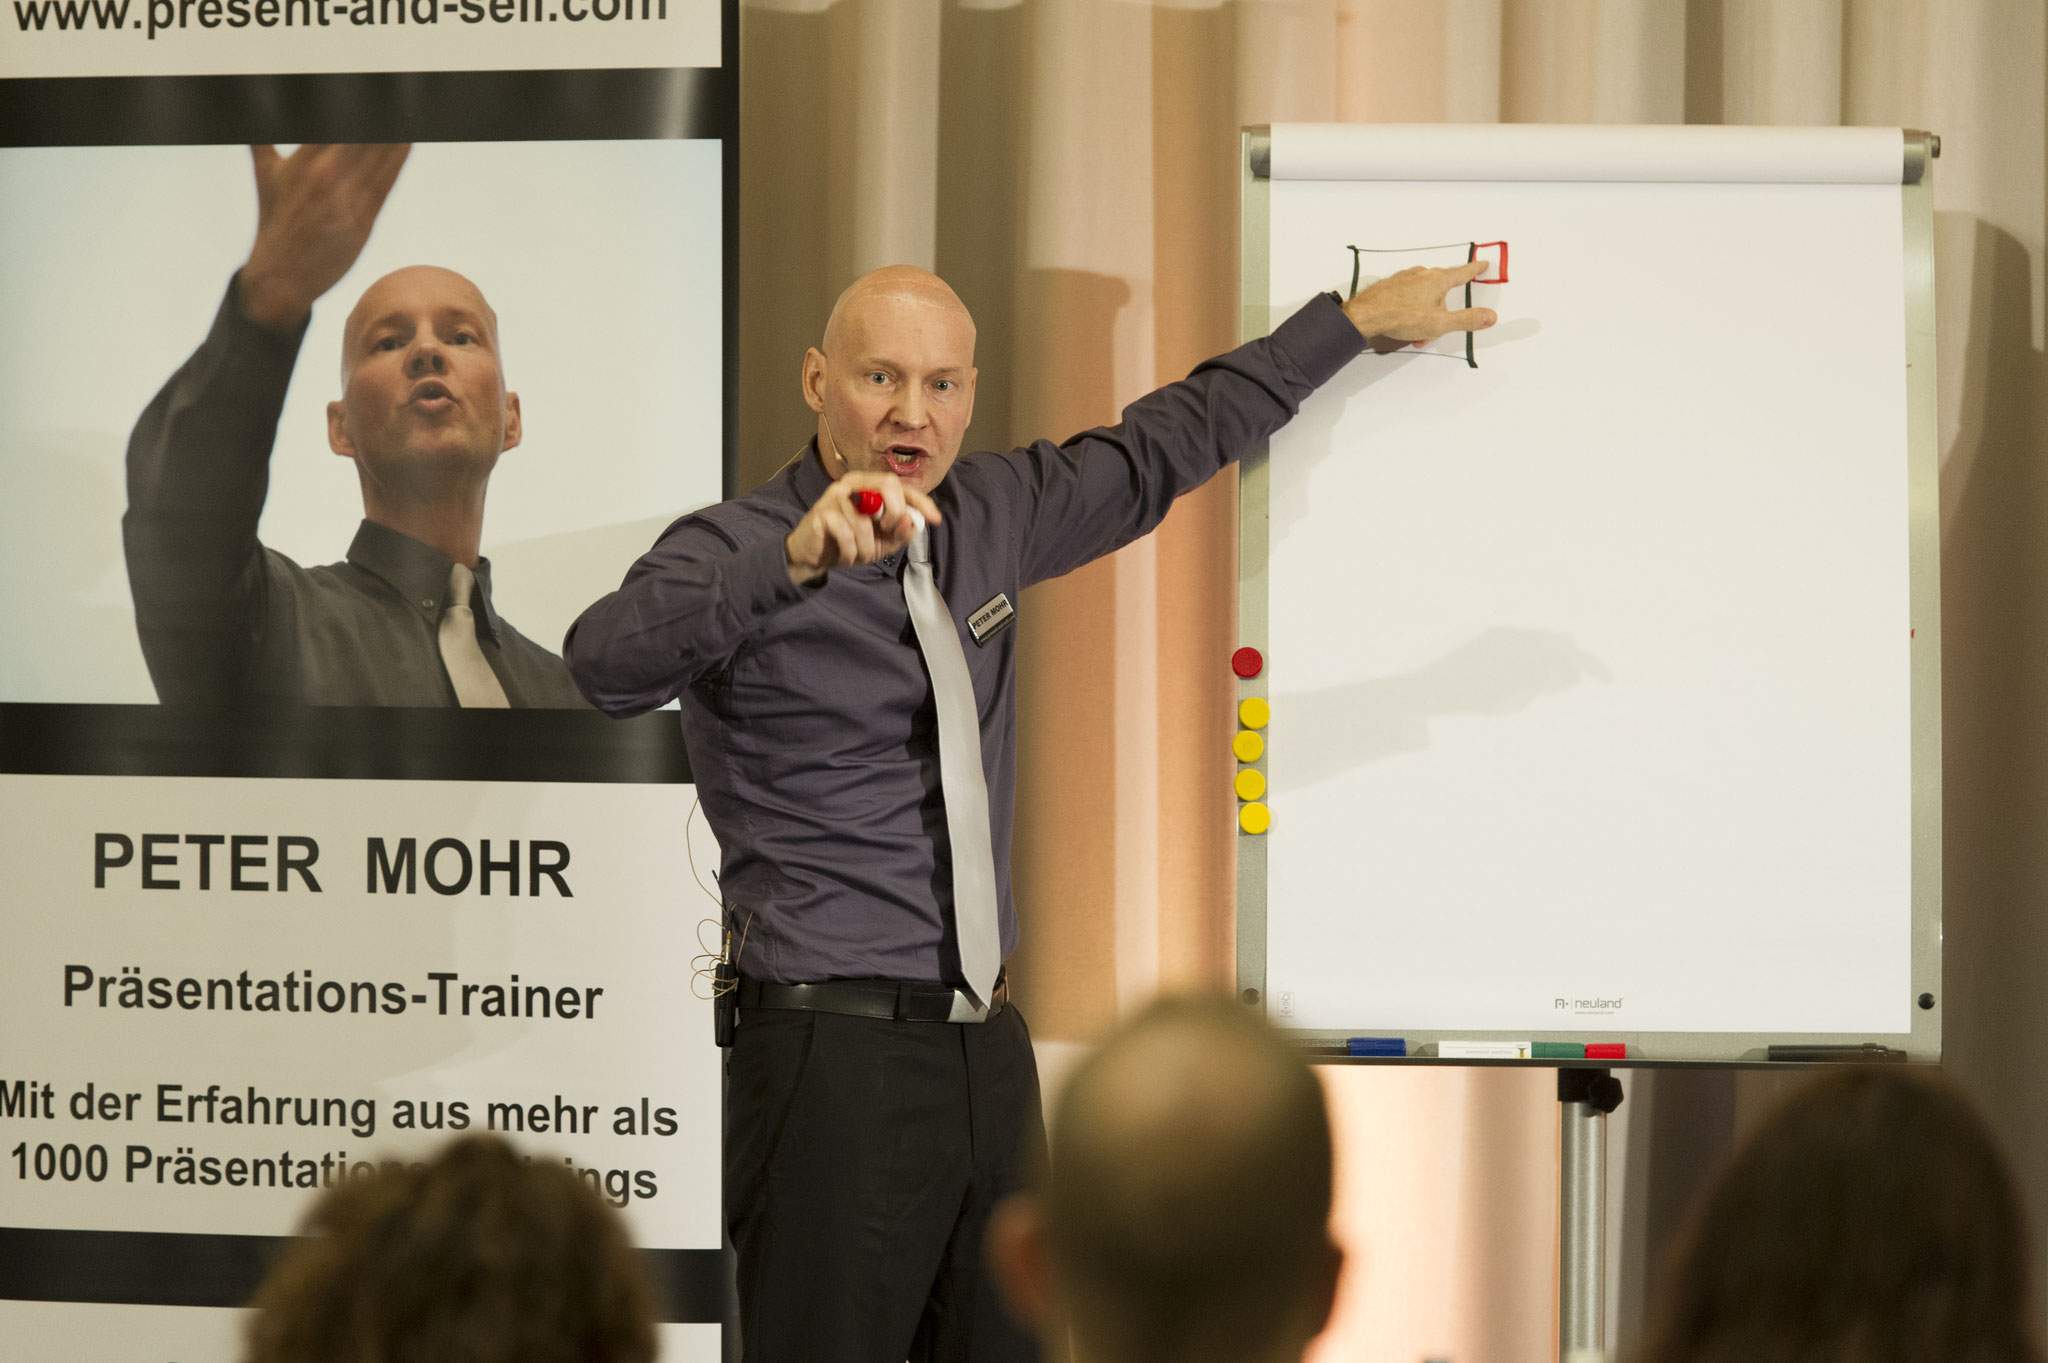 PETER MOHR -- Speaker + Präsentationstrainer + Rhetoriktrainer